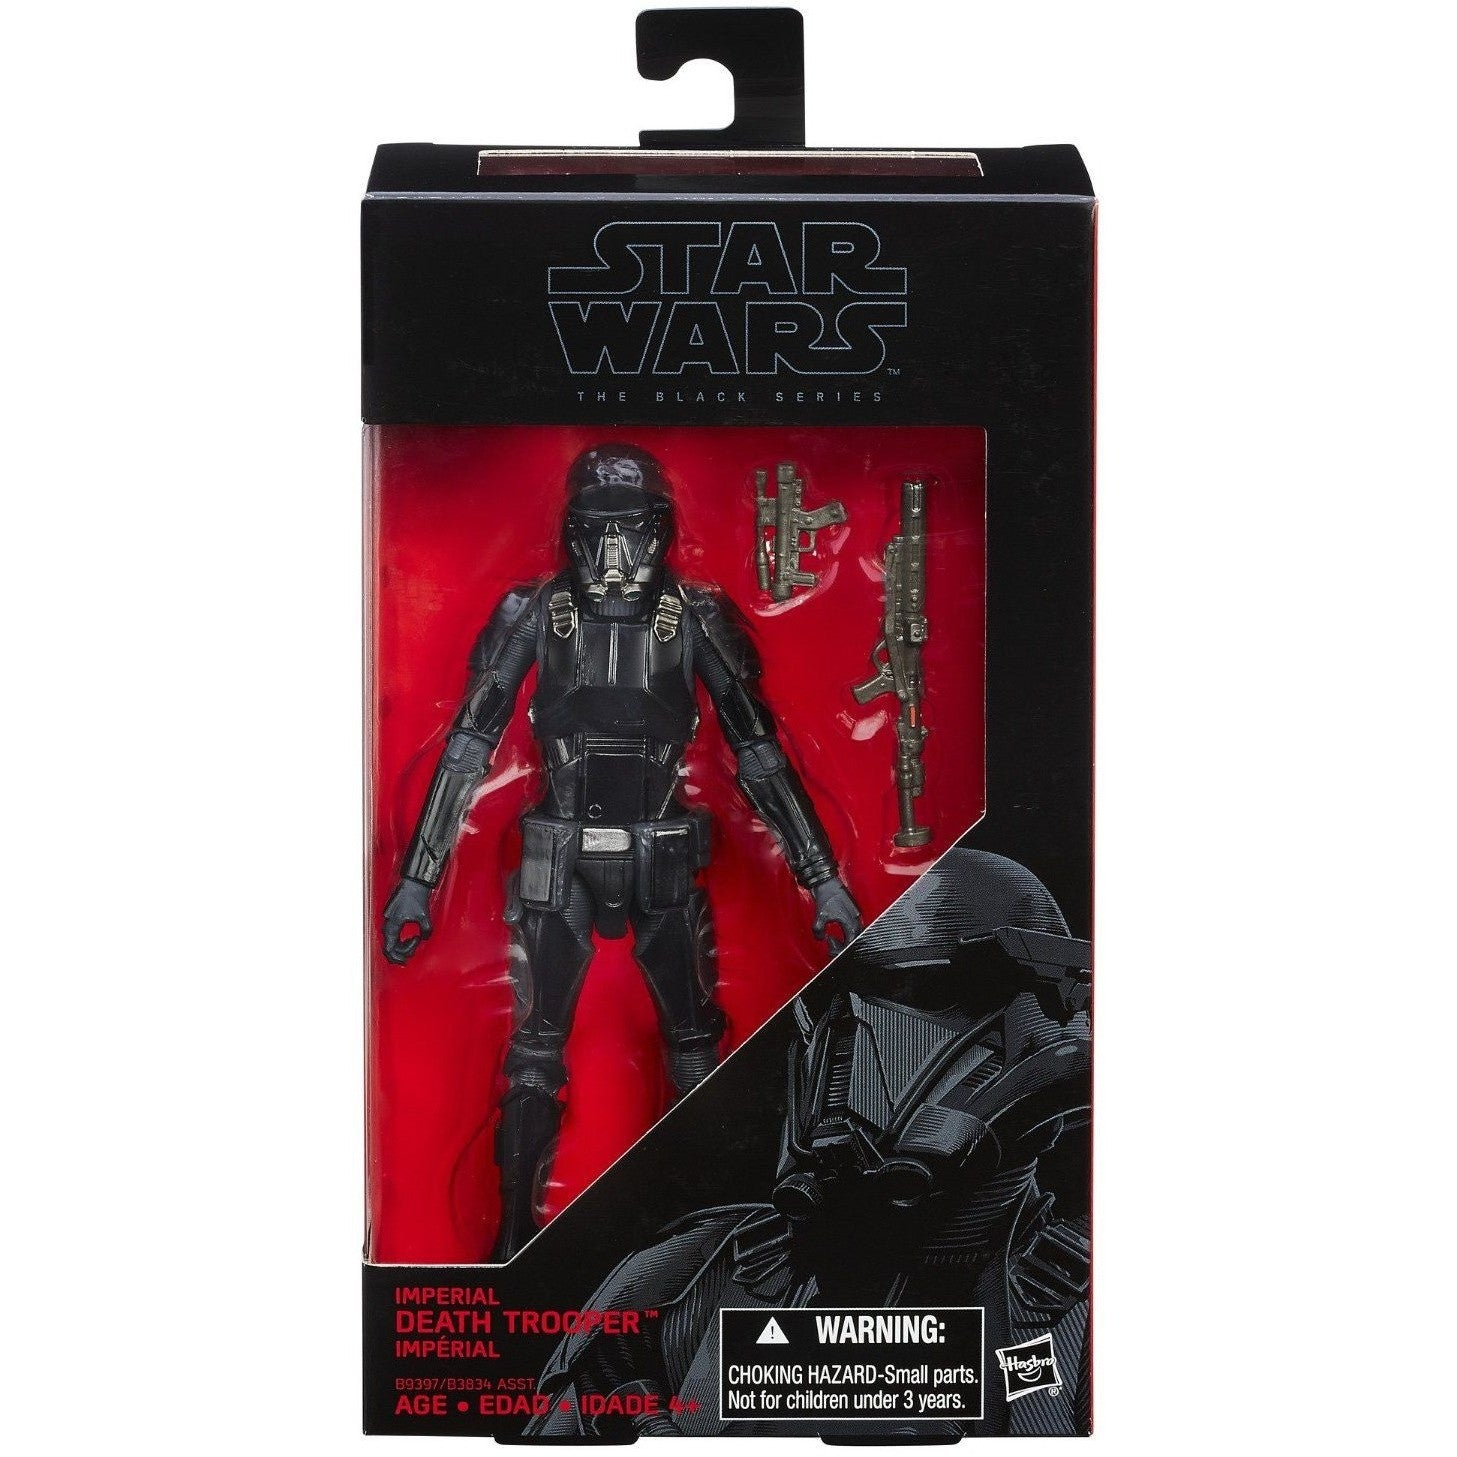 The Black Series Imperial Death Trooper Exclusive Action Star Wars Rogue One